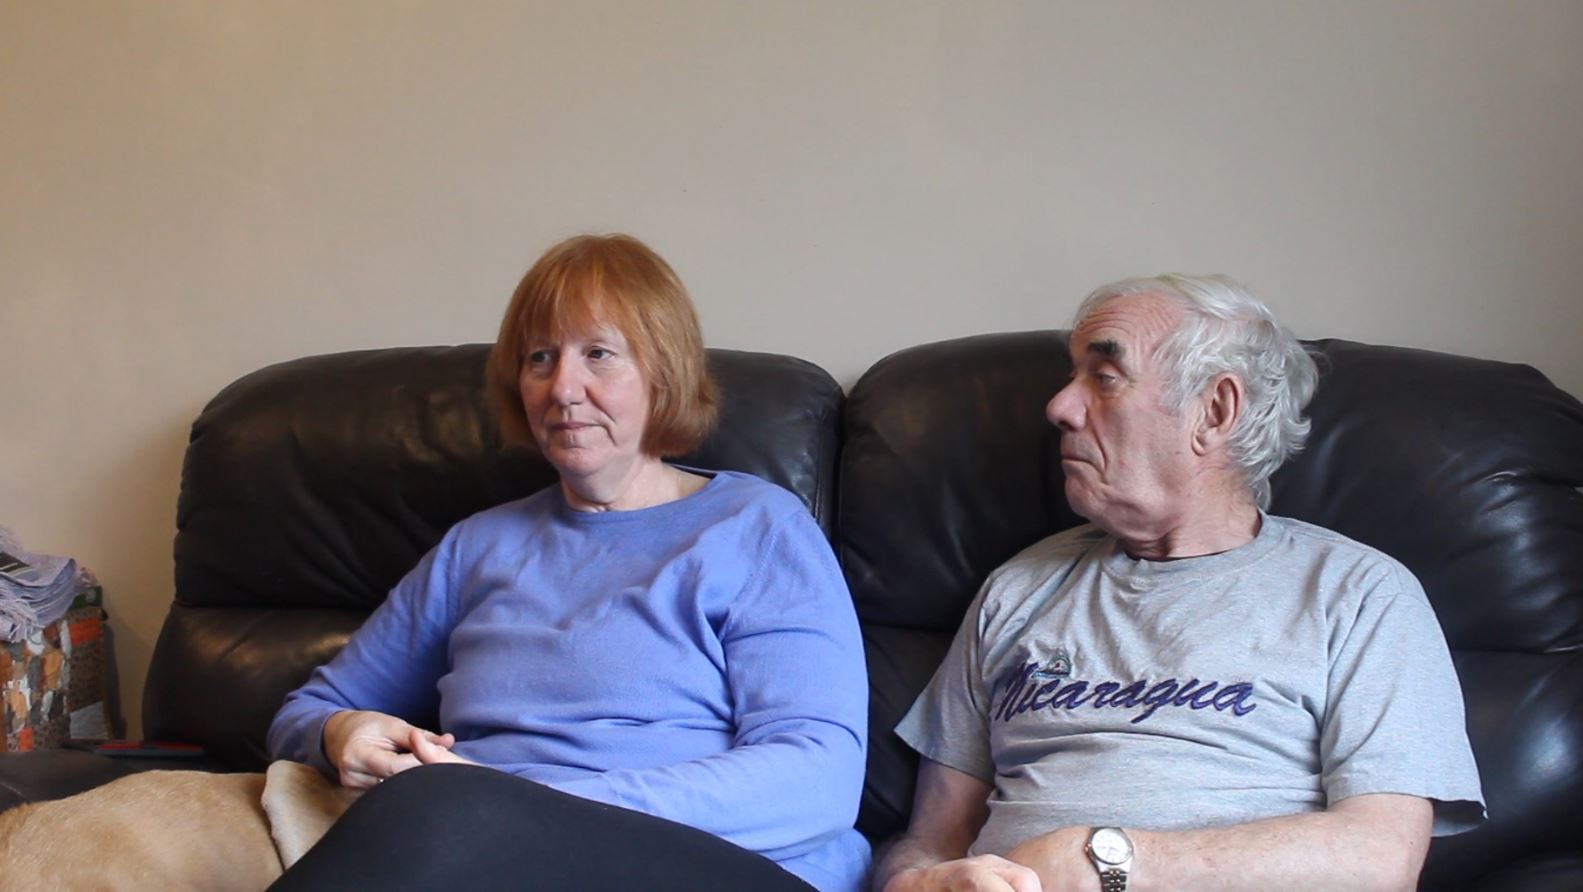 Liz and Mike Brookes sat side by side, at home in Rochdale.